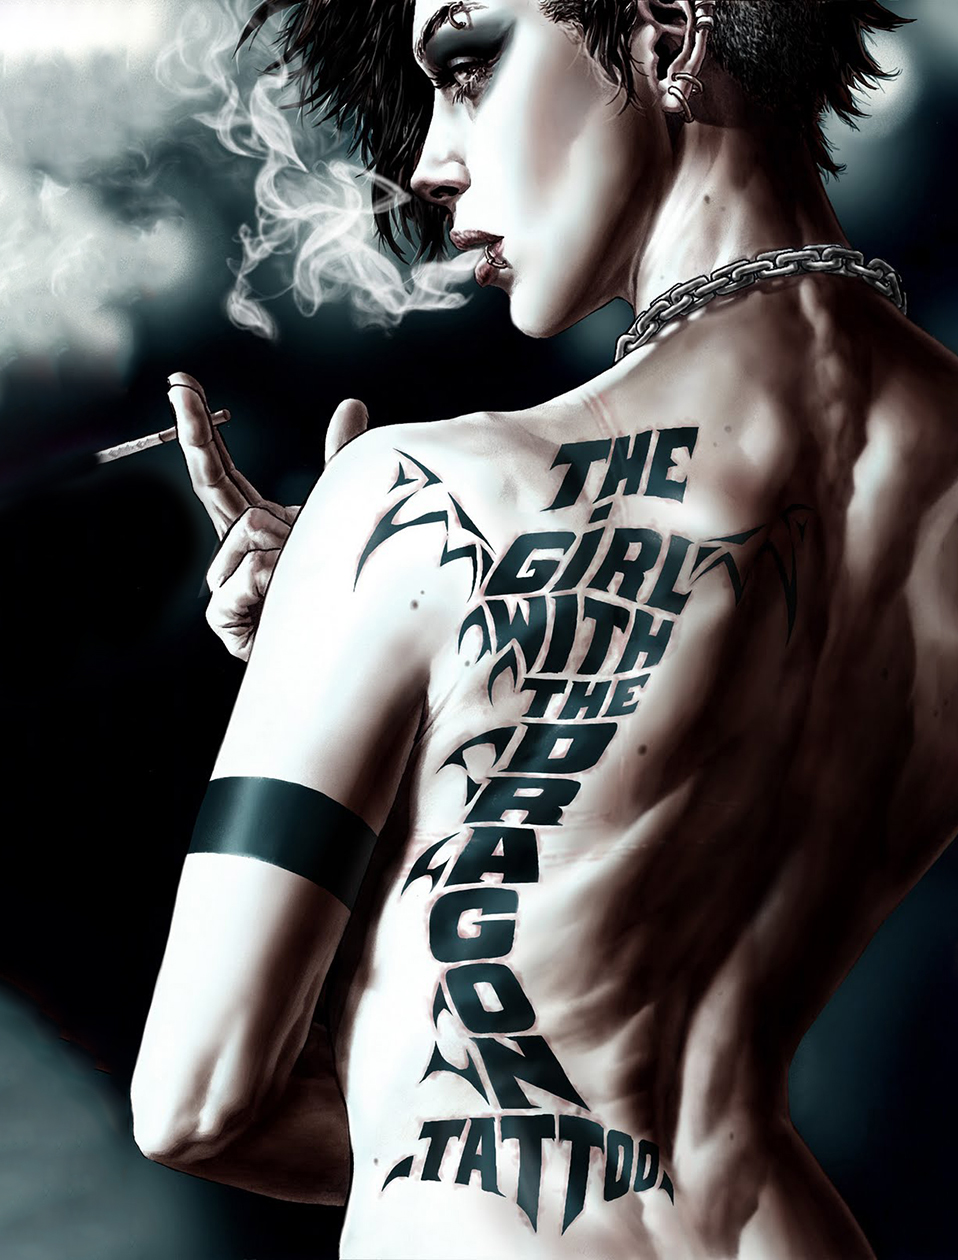 Stieg_Larssons_The_Girl_With_the_Dragon_Tattoo-LANDING2